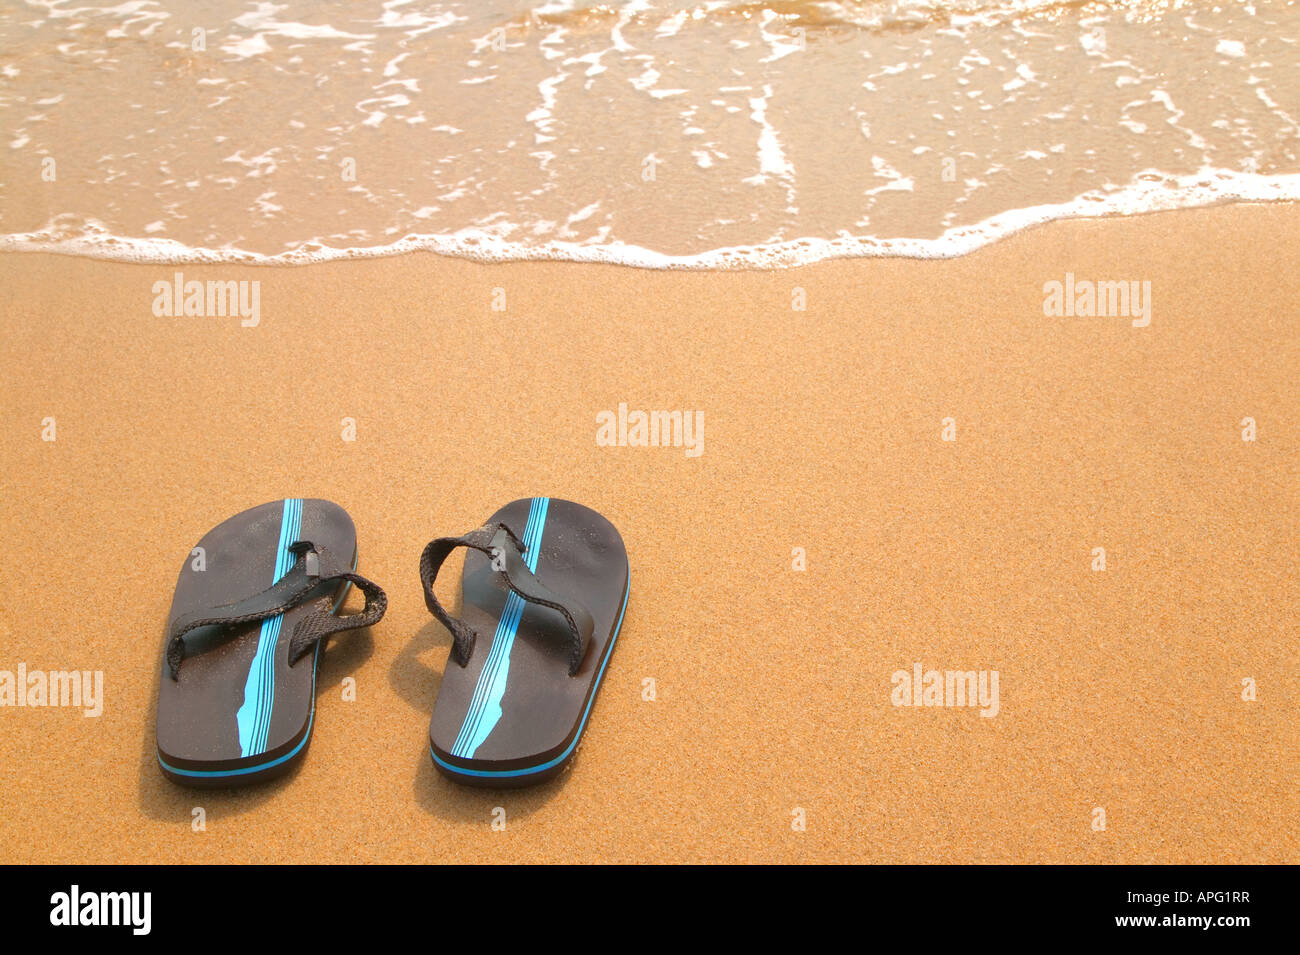 A pair of flip flops on a golden sandy beach by the waters edge - Stock Image